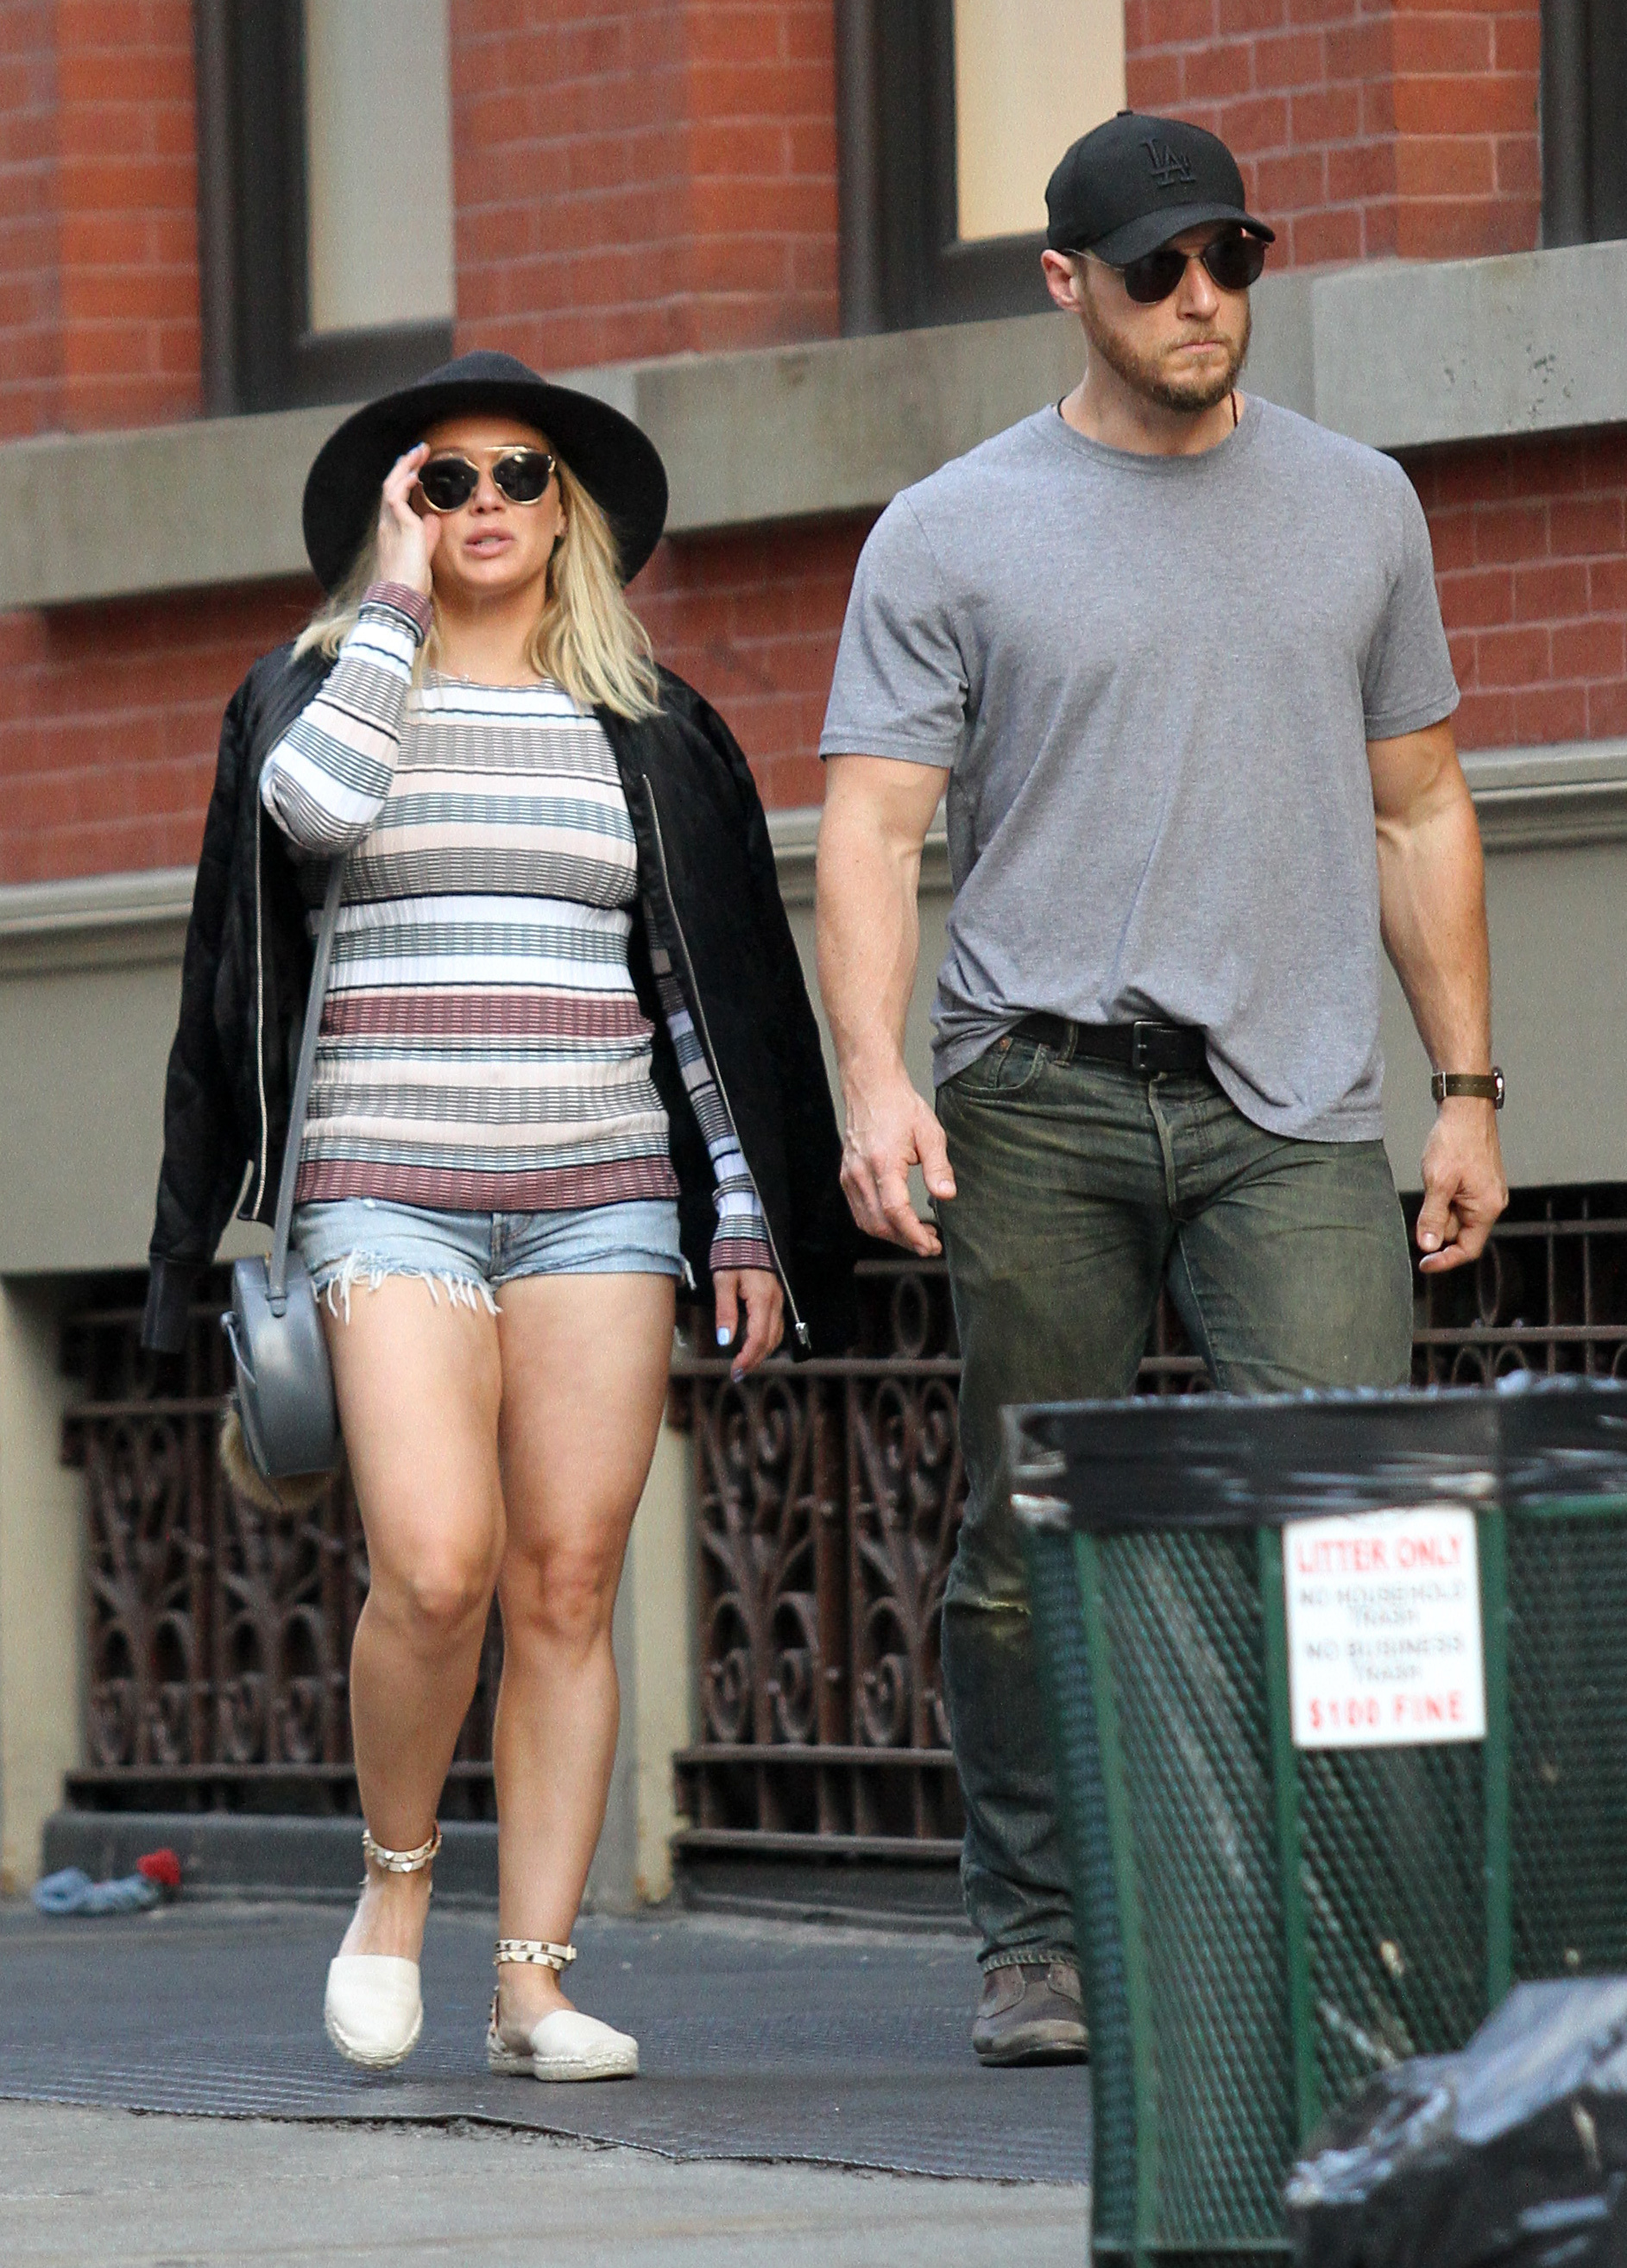 Hilary Duff is dating her personal trainer